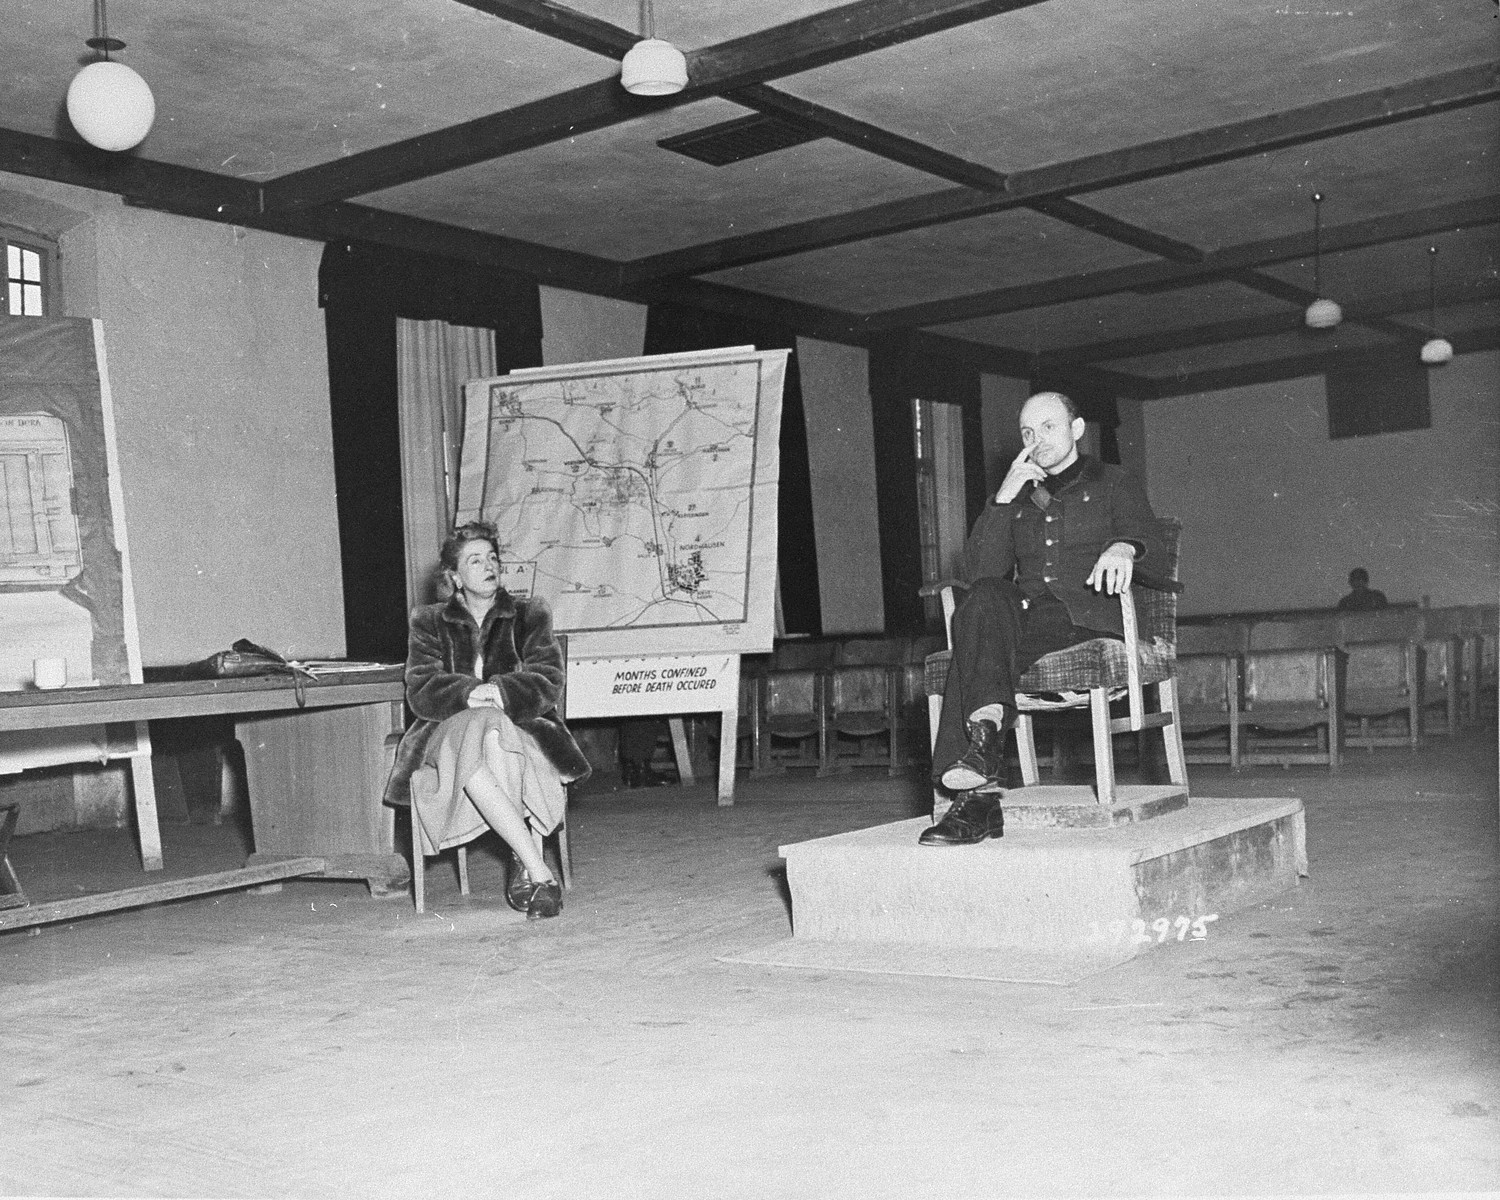 Former SS Colonel Gerhard Maurer testifies for the defense at the trial of former camp personnel and prisoners from Dora-Mittelbau. To the left is Emily Polyn-Cobb, an interpreter.